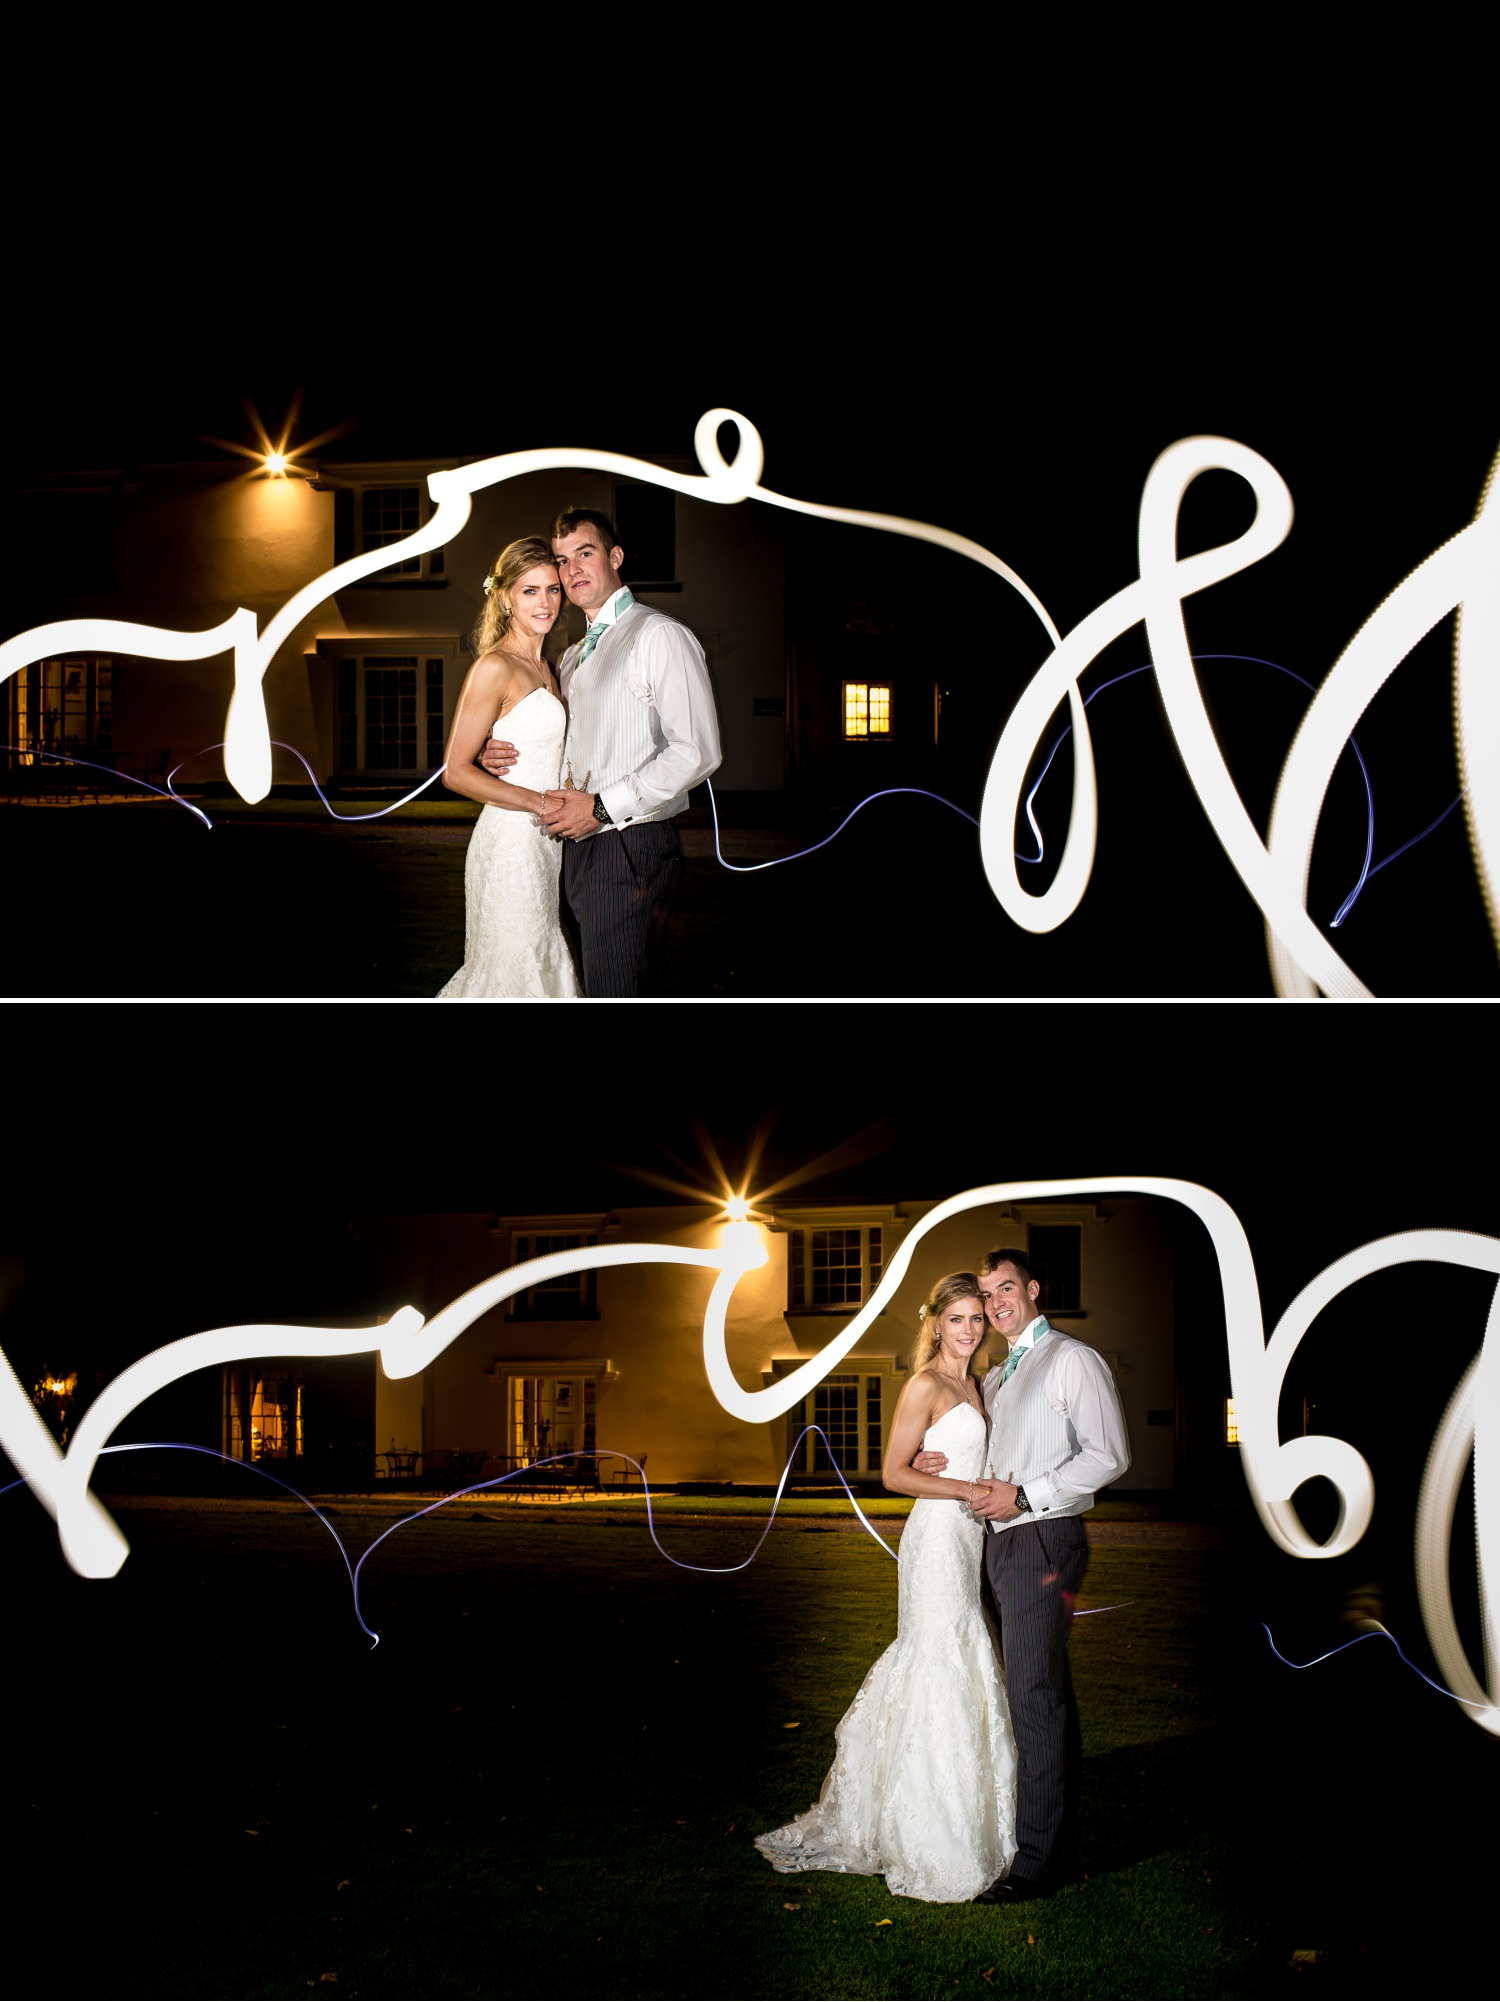 Pentre Mawr Country House Wedding Photograph using light painting